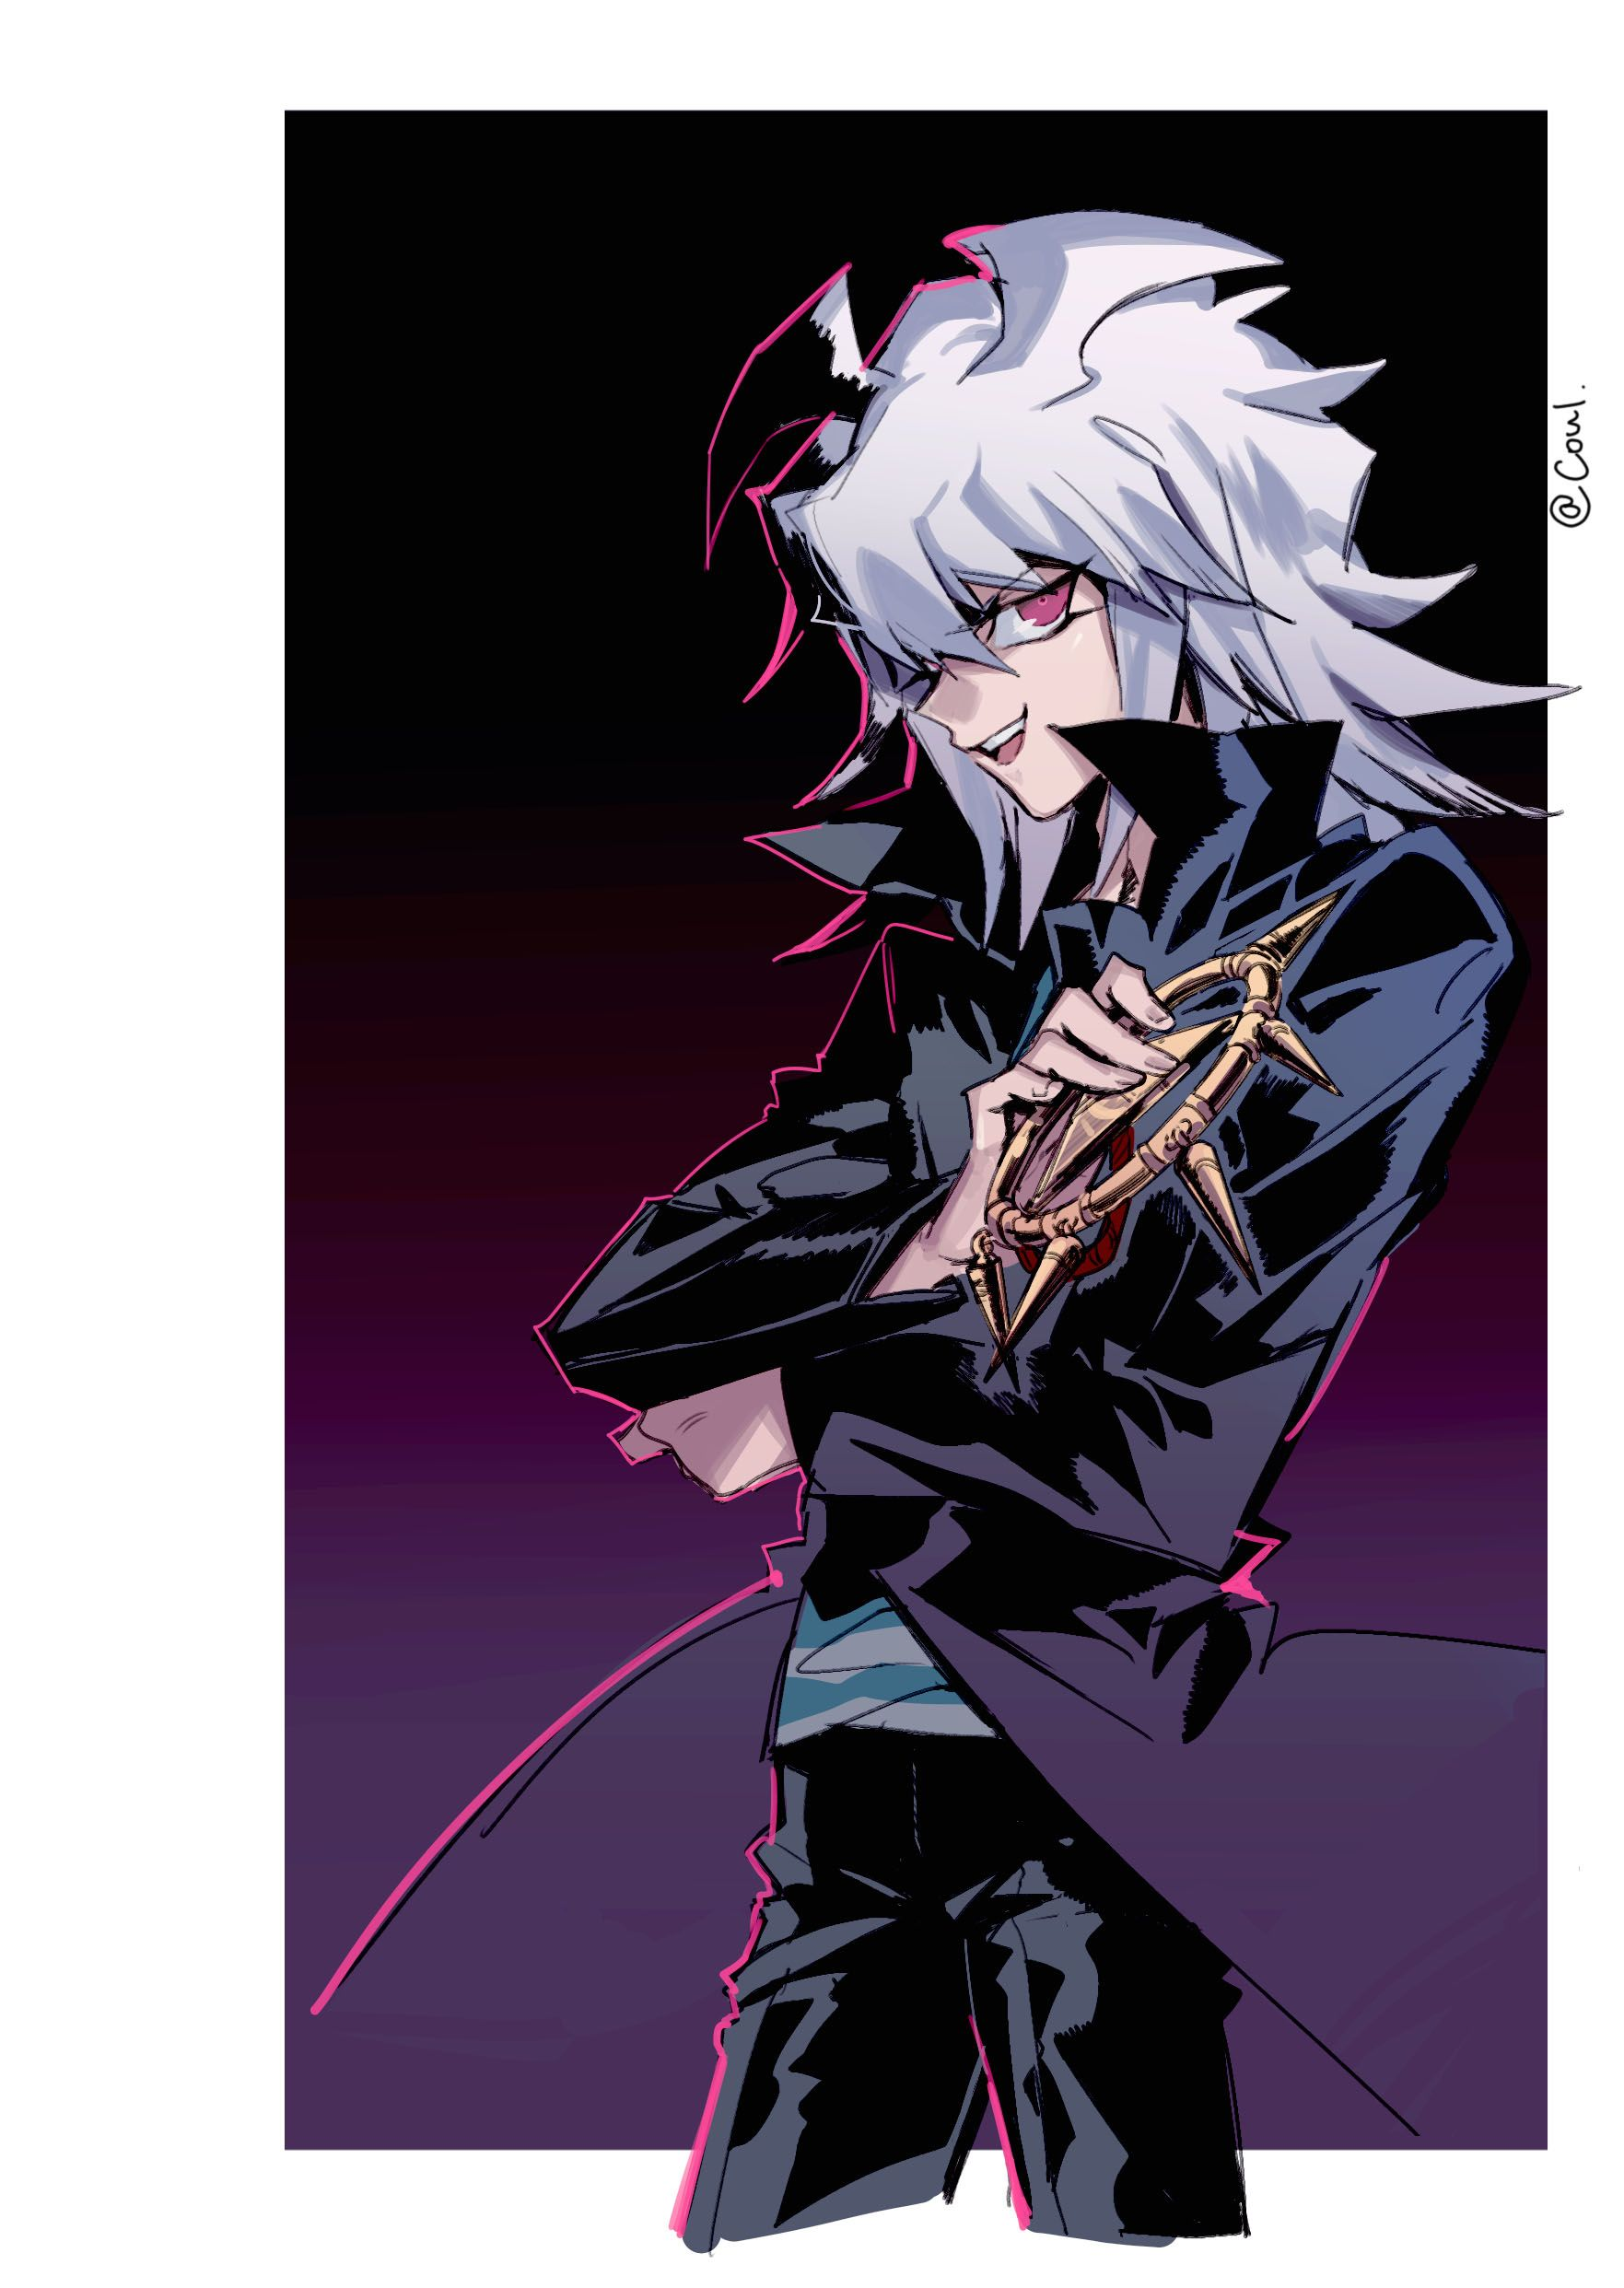 Pin by Joud on Bakura Ryou Yugioh, Anime images, Anime